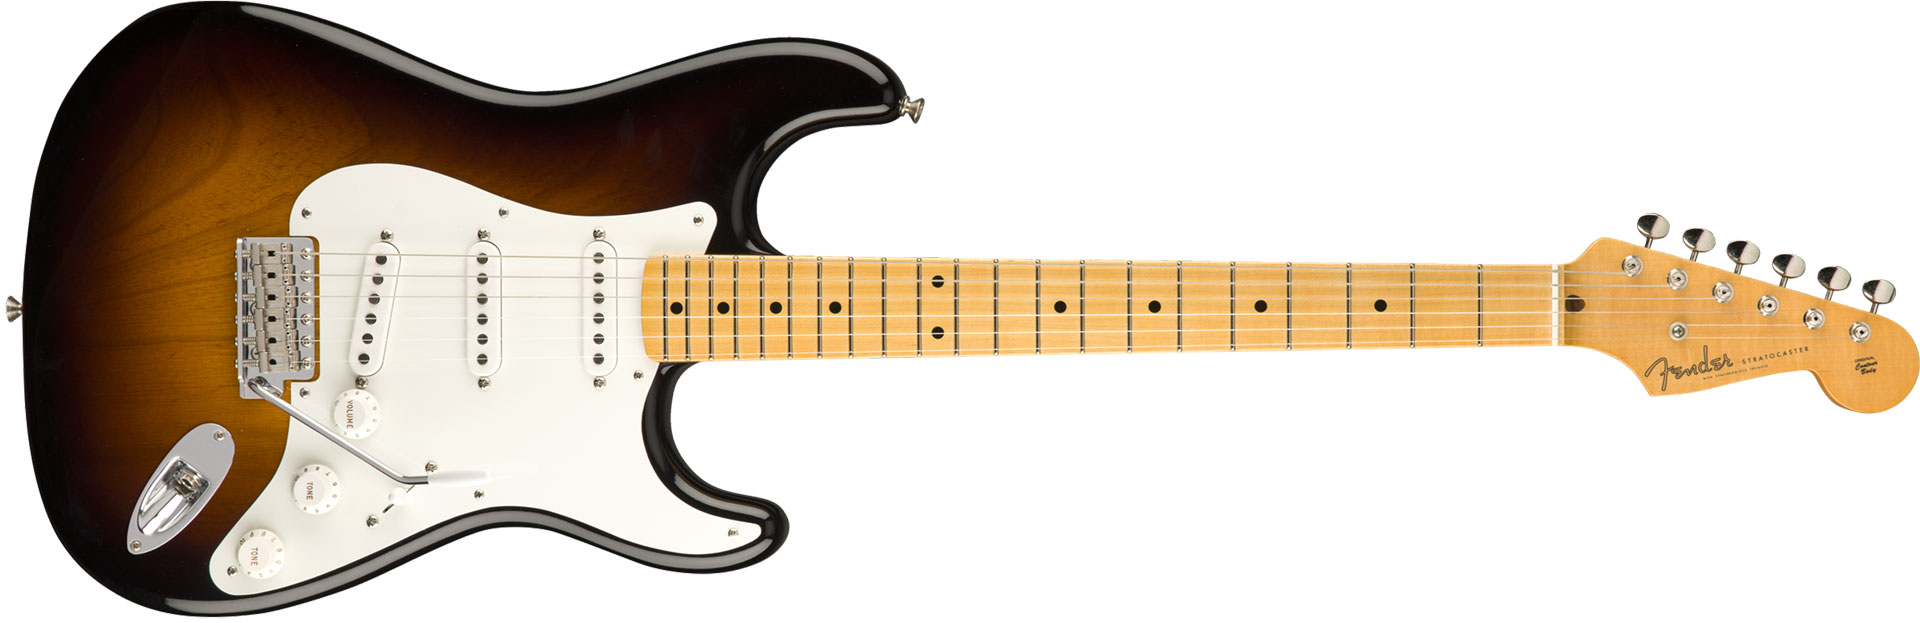 GUITARRA FENDER 55 STRATOCASTER VINTAGE CUSTOM 923-5000-560 WIDE FADE 2-COLOR SUNBURST